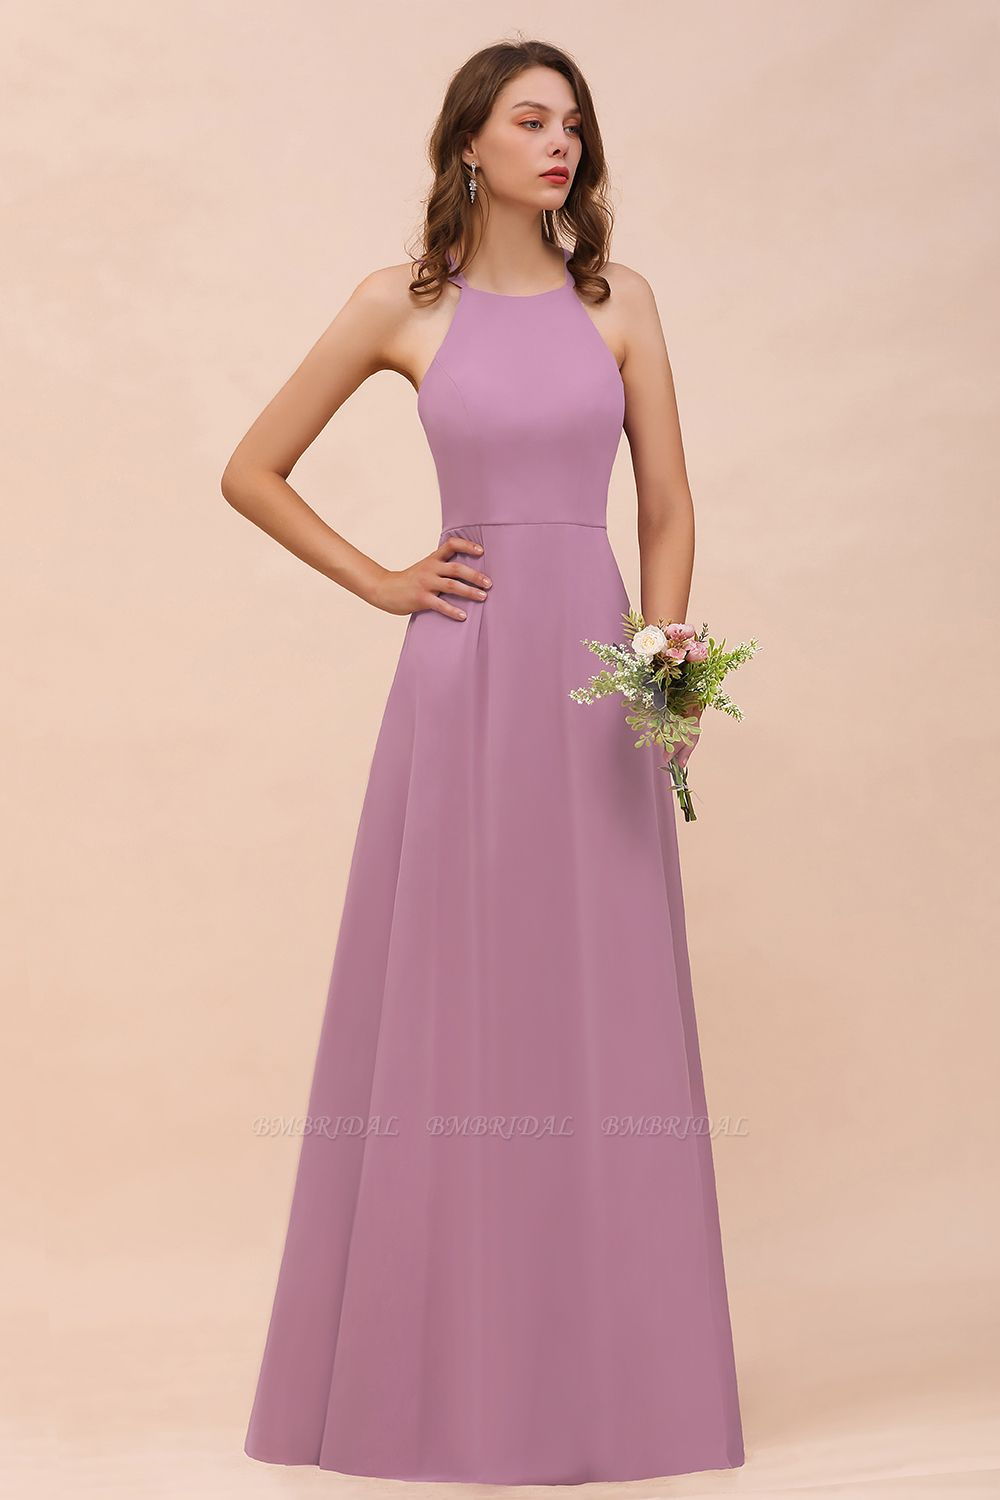 BMbridal Gorgeous Halter Wisteria Chiffon Bridesmaid Dresses with Draped Back